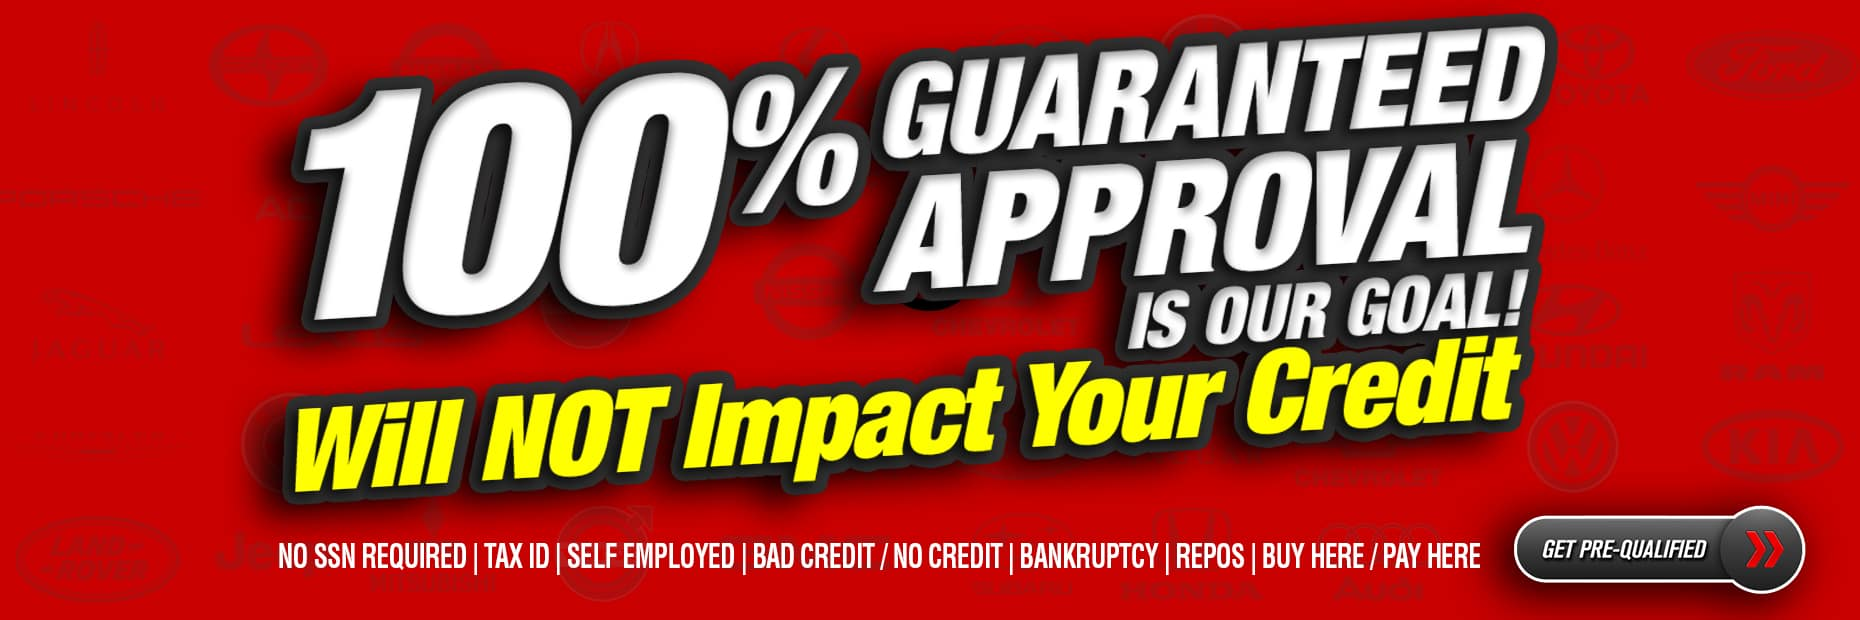 Get Pre-Qualified. Does NOT impact your credit.